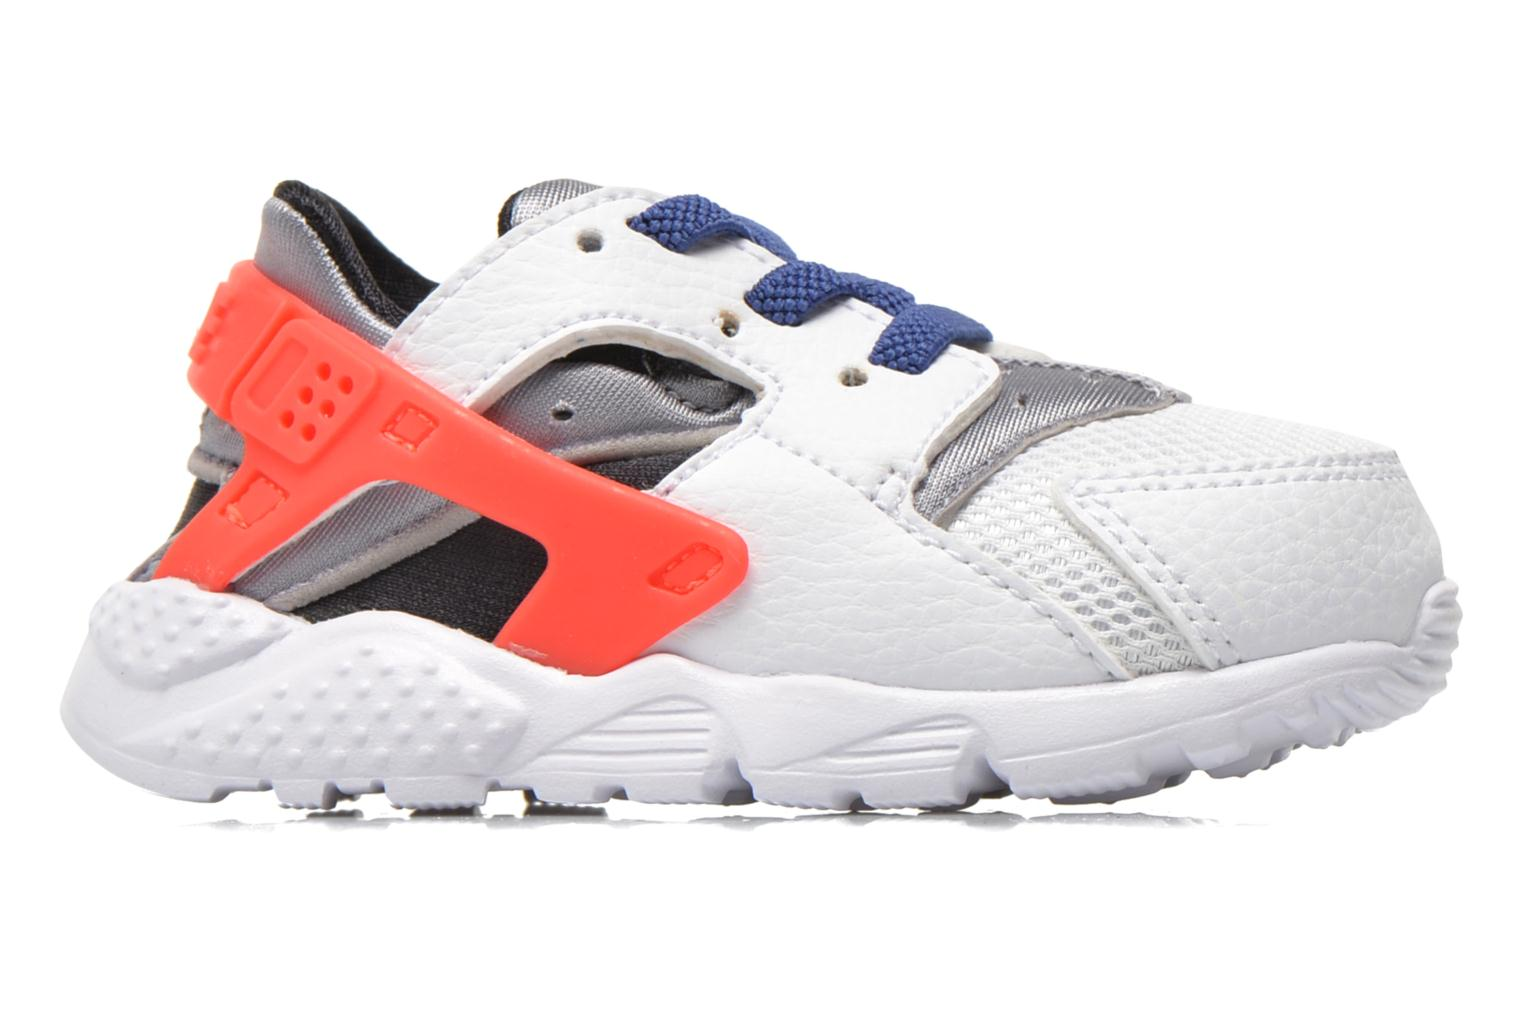 Particle Rose/Particle Rose-Thunder Blue Nike Nike Huarache Run (Td) (Rose)